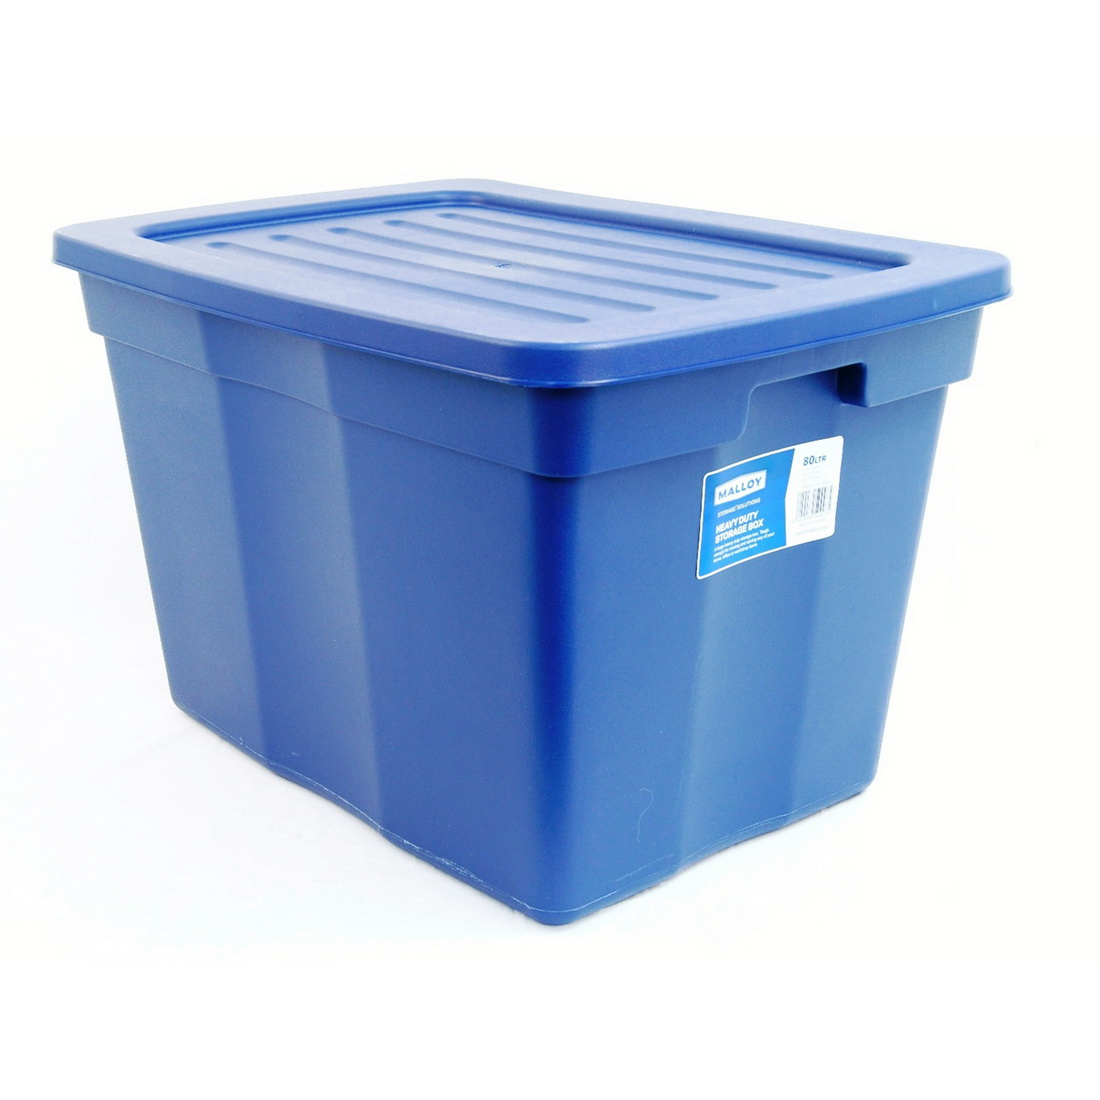 Malloy Heave Duty Storage Box With Lid 79L Blue S0003